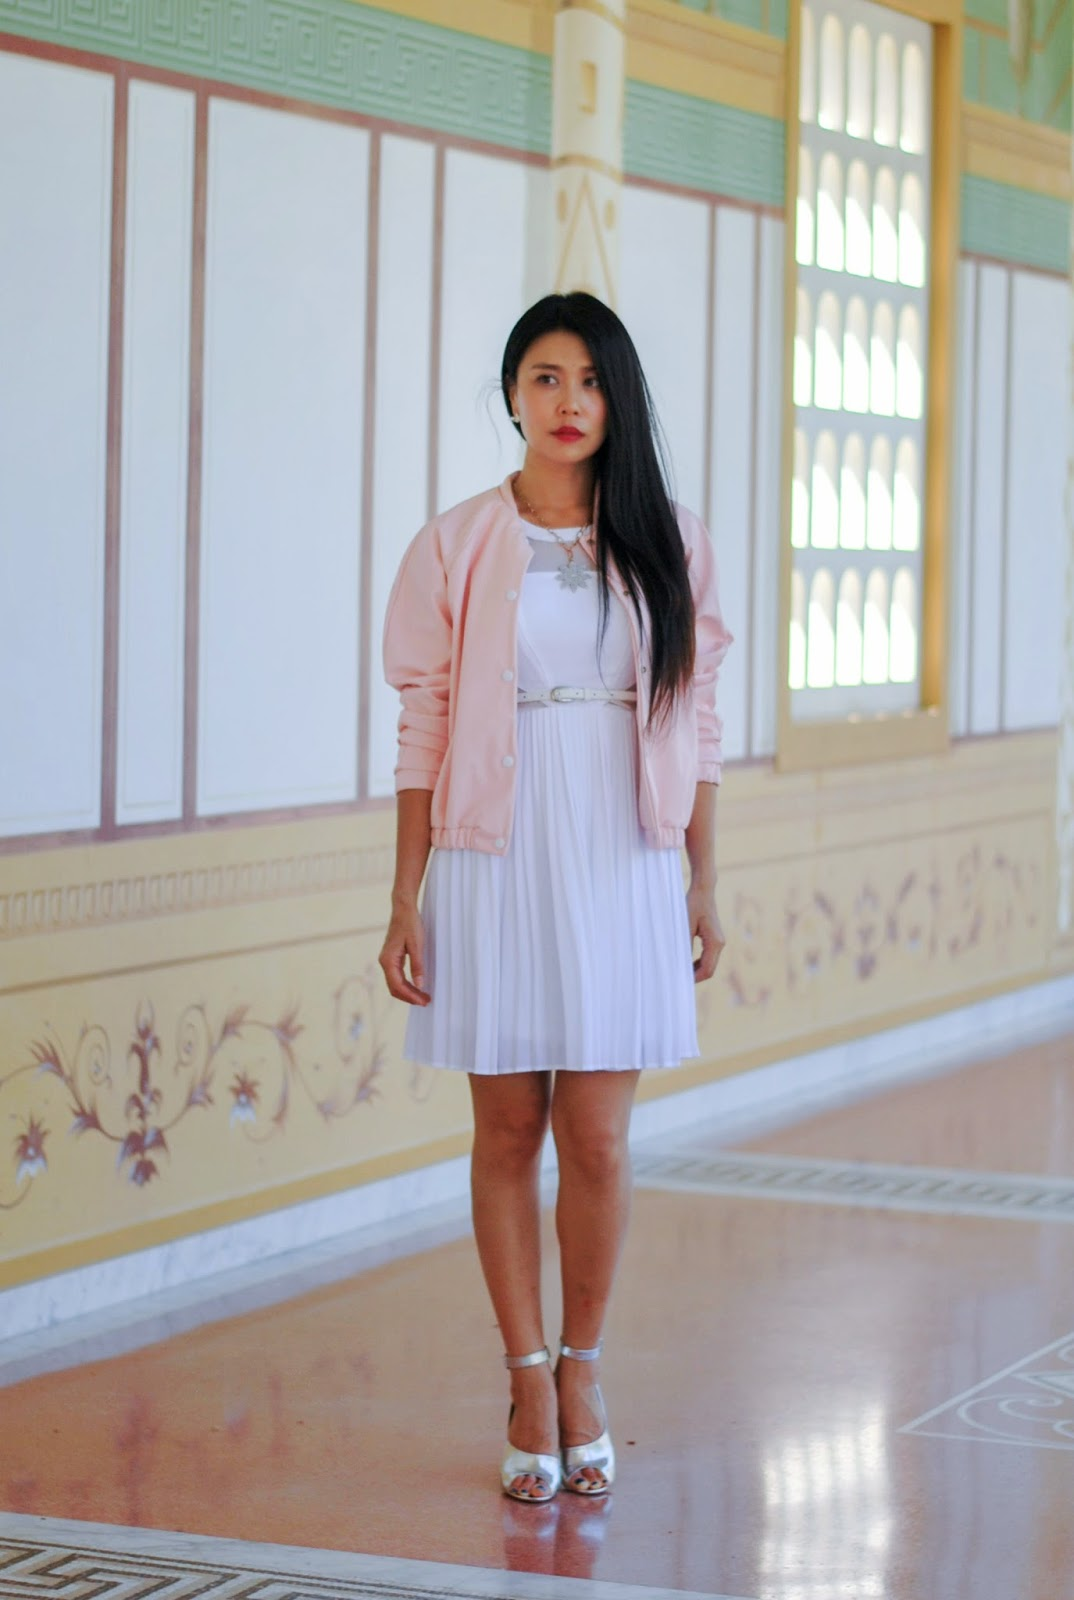 jenny wu of goodbadandfab.com is wearing xoxo white dress boohoo pink bomber jacket 3.1 phillip lim cody silver heels